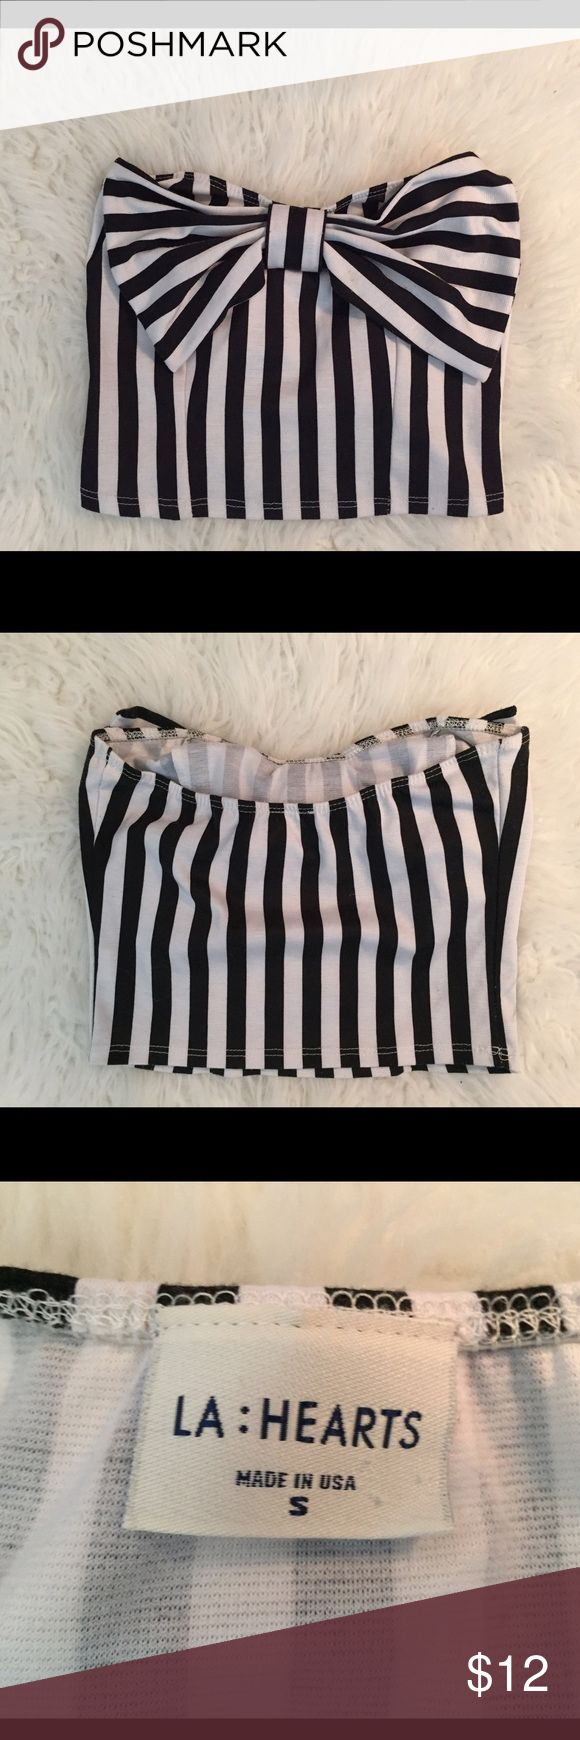 Black and White Striped Crop Top with Bow Crop Top from Forever 21- black and white stripes with a big bow on the front over the chest area. It's a half-shirt so it's a little shorter than a normal crop top. Very comfy though! LA Hearts Tops Crop Tops